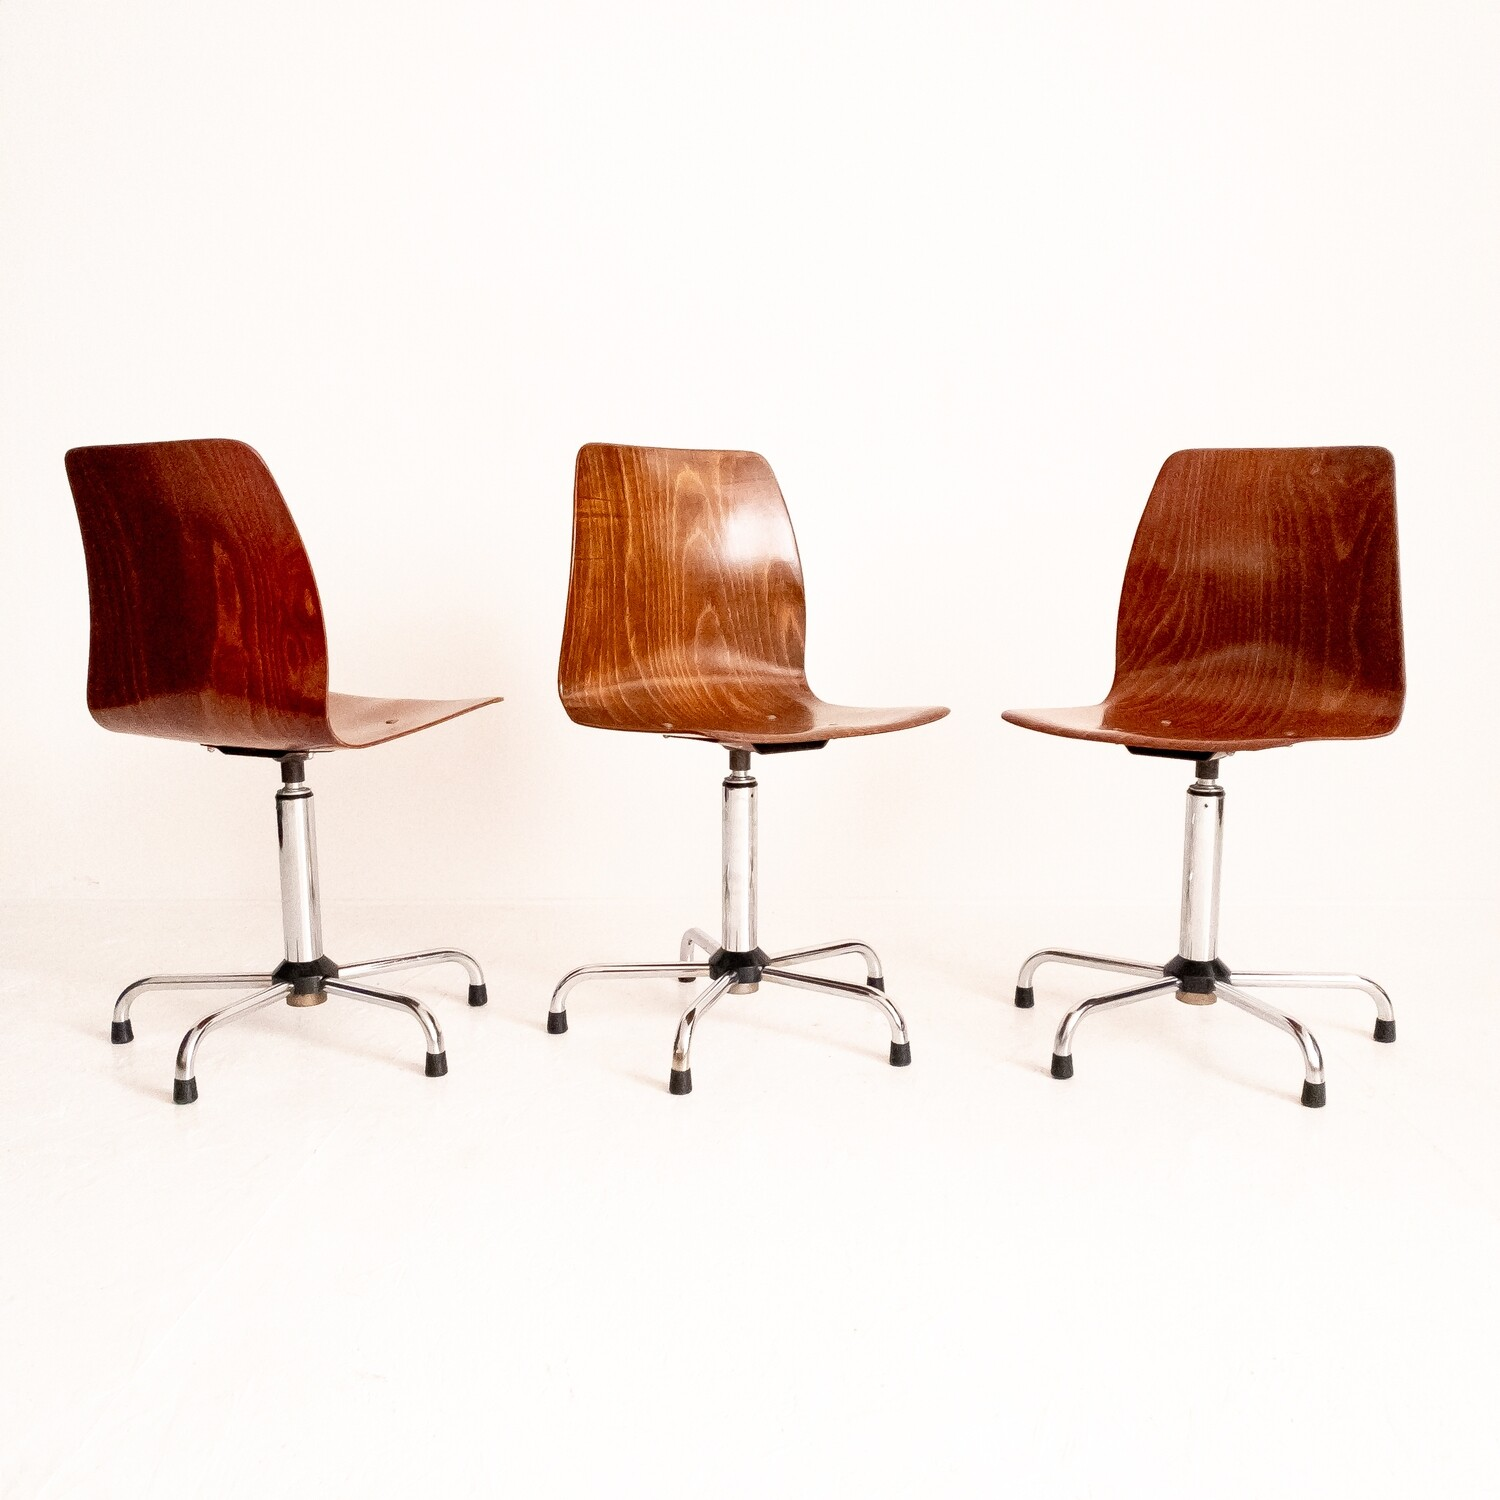 Set of 3 Pagholz swivel chairs